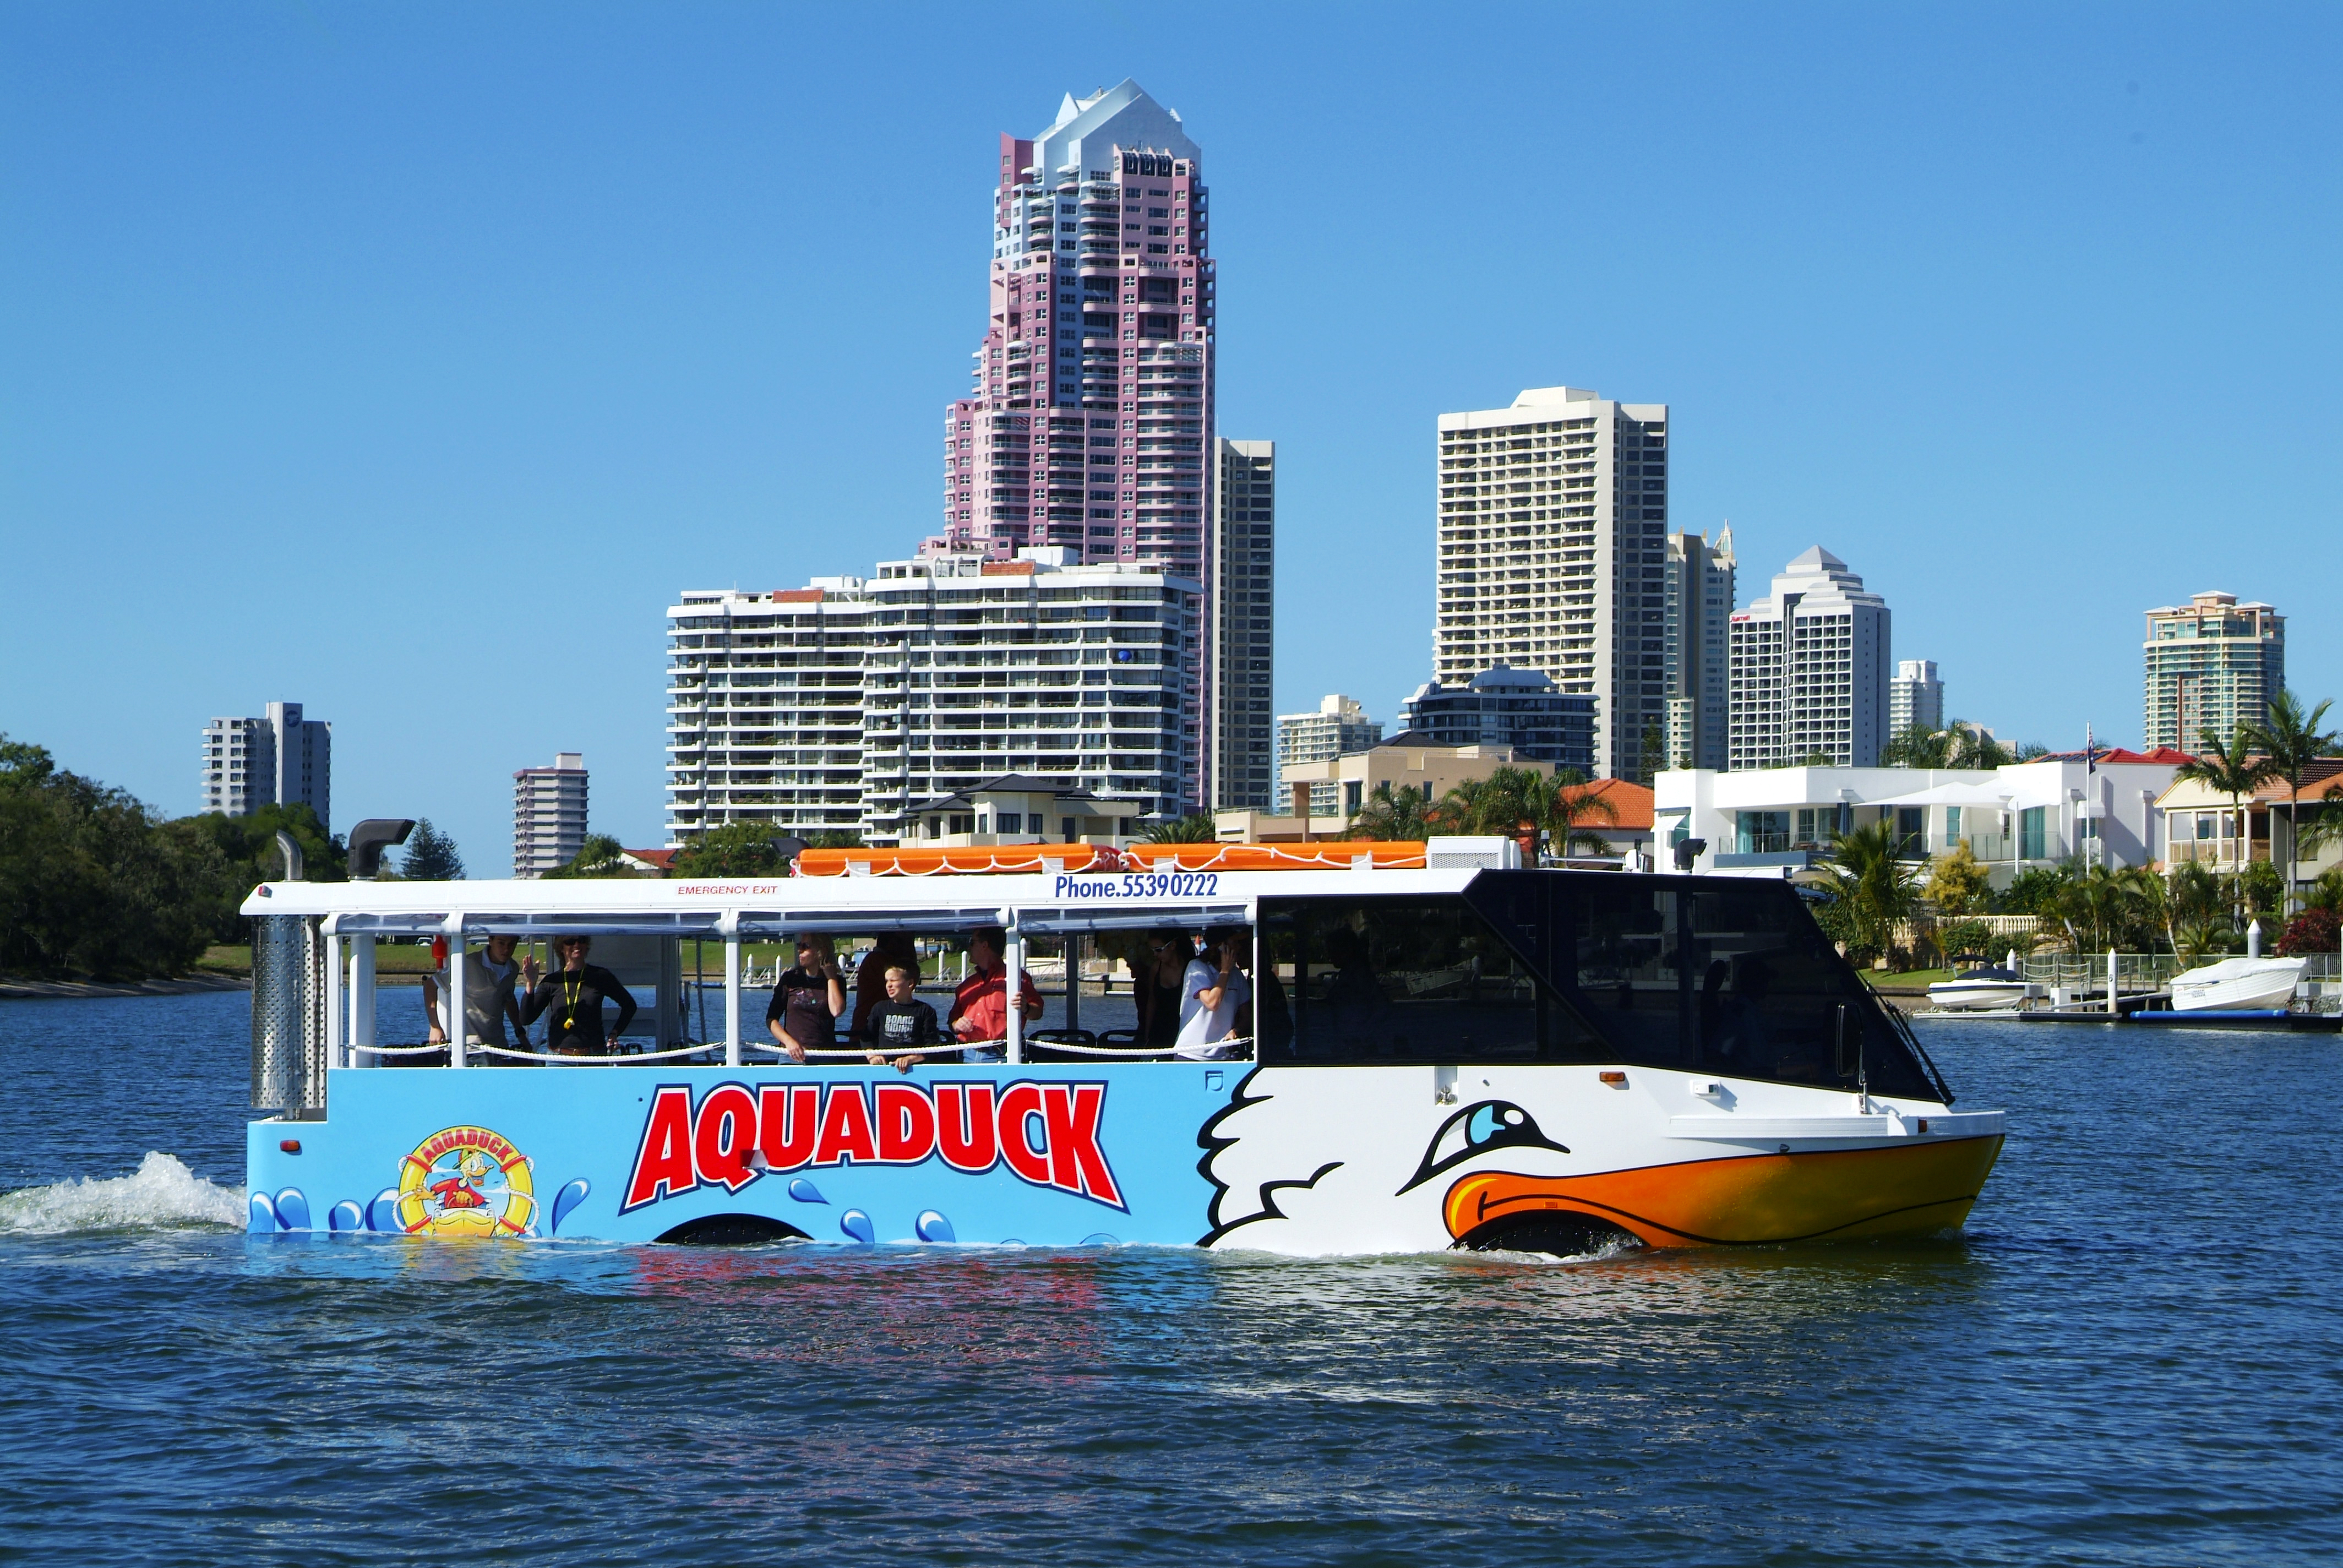 Tickets for Aquaduck 1-Hour City Tour and River Cruise